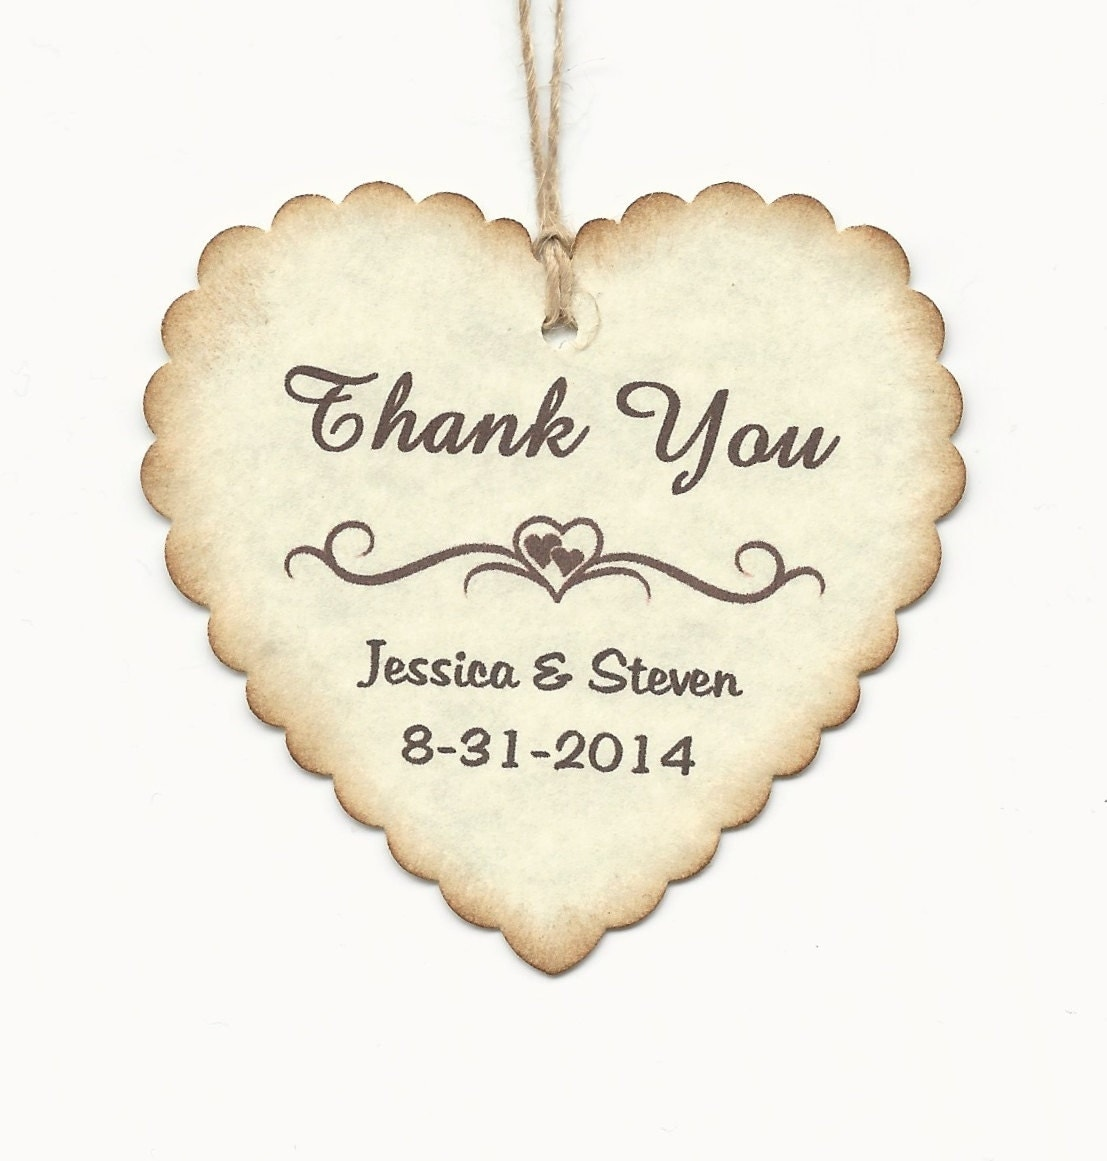 100 PERSONALIZED Heart Shaped Thank you Tag -Wedding Favor tags ...